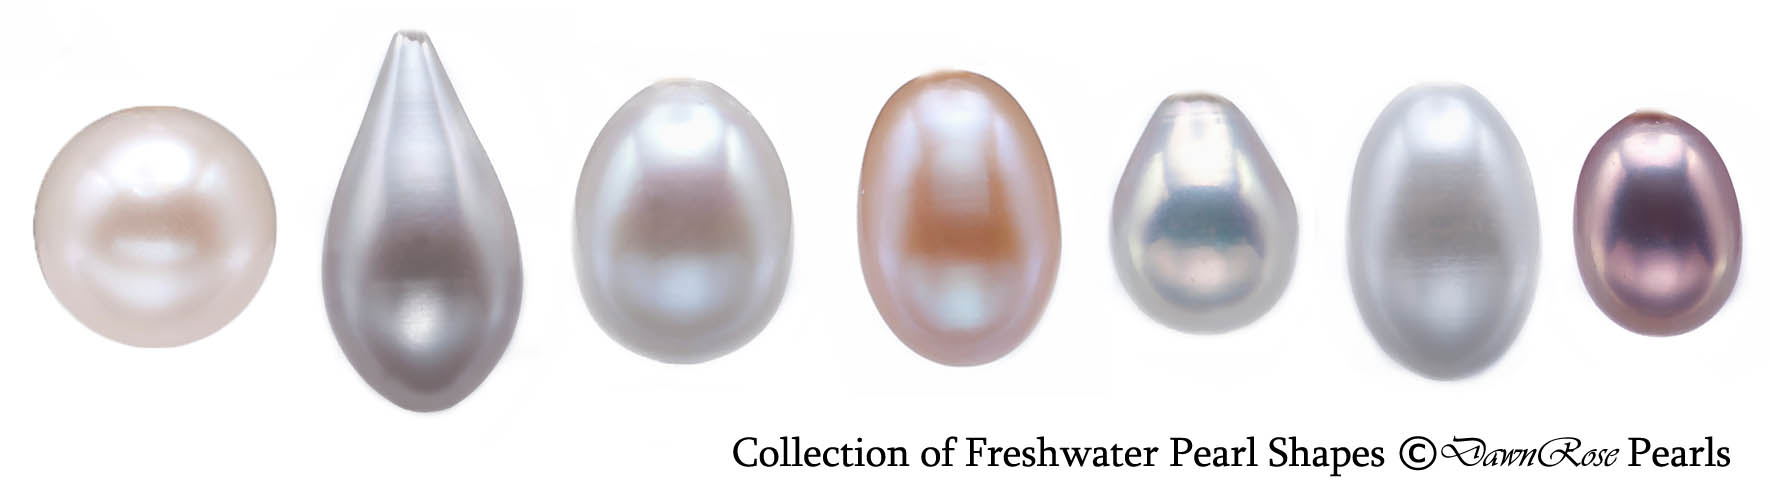 Collection of freshwater pearls shapes